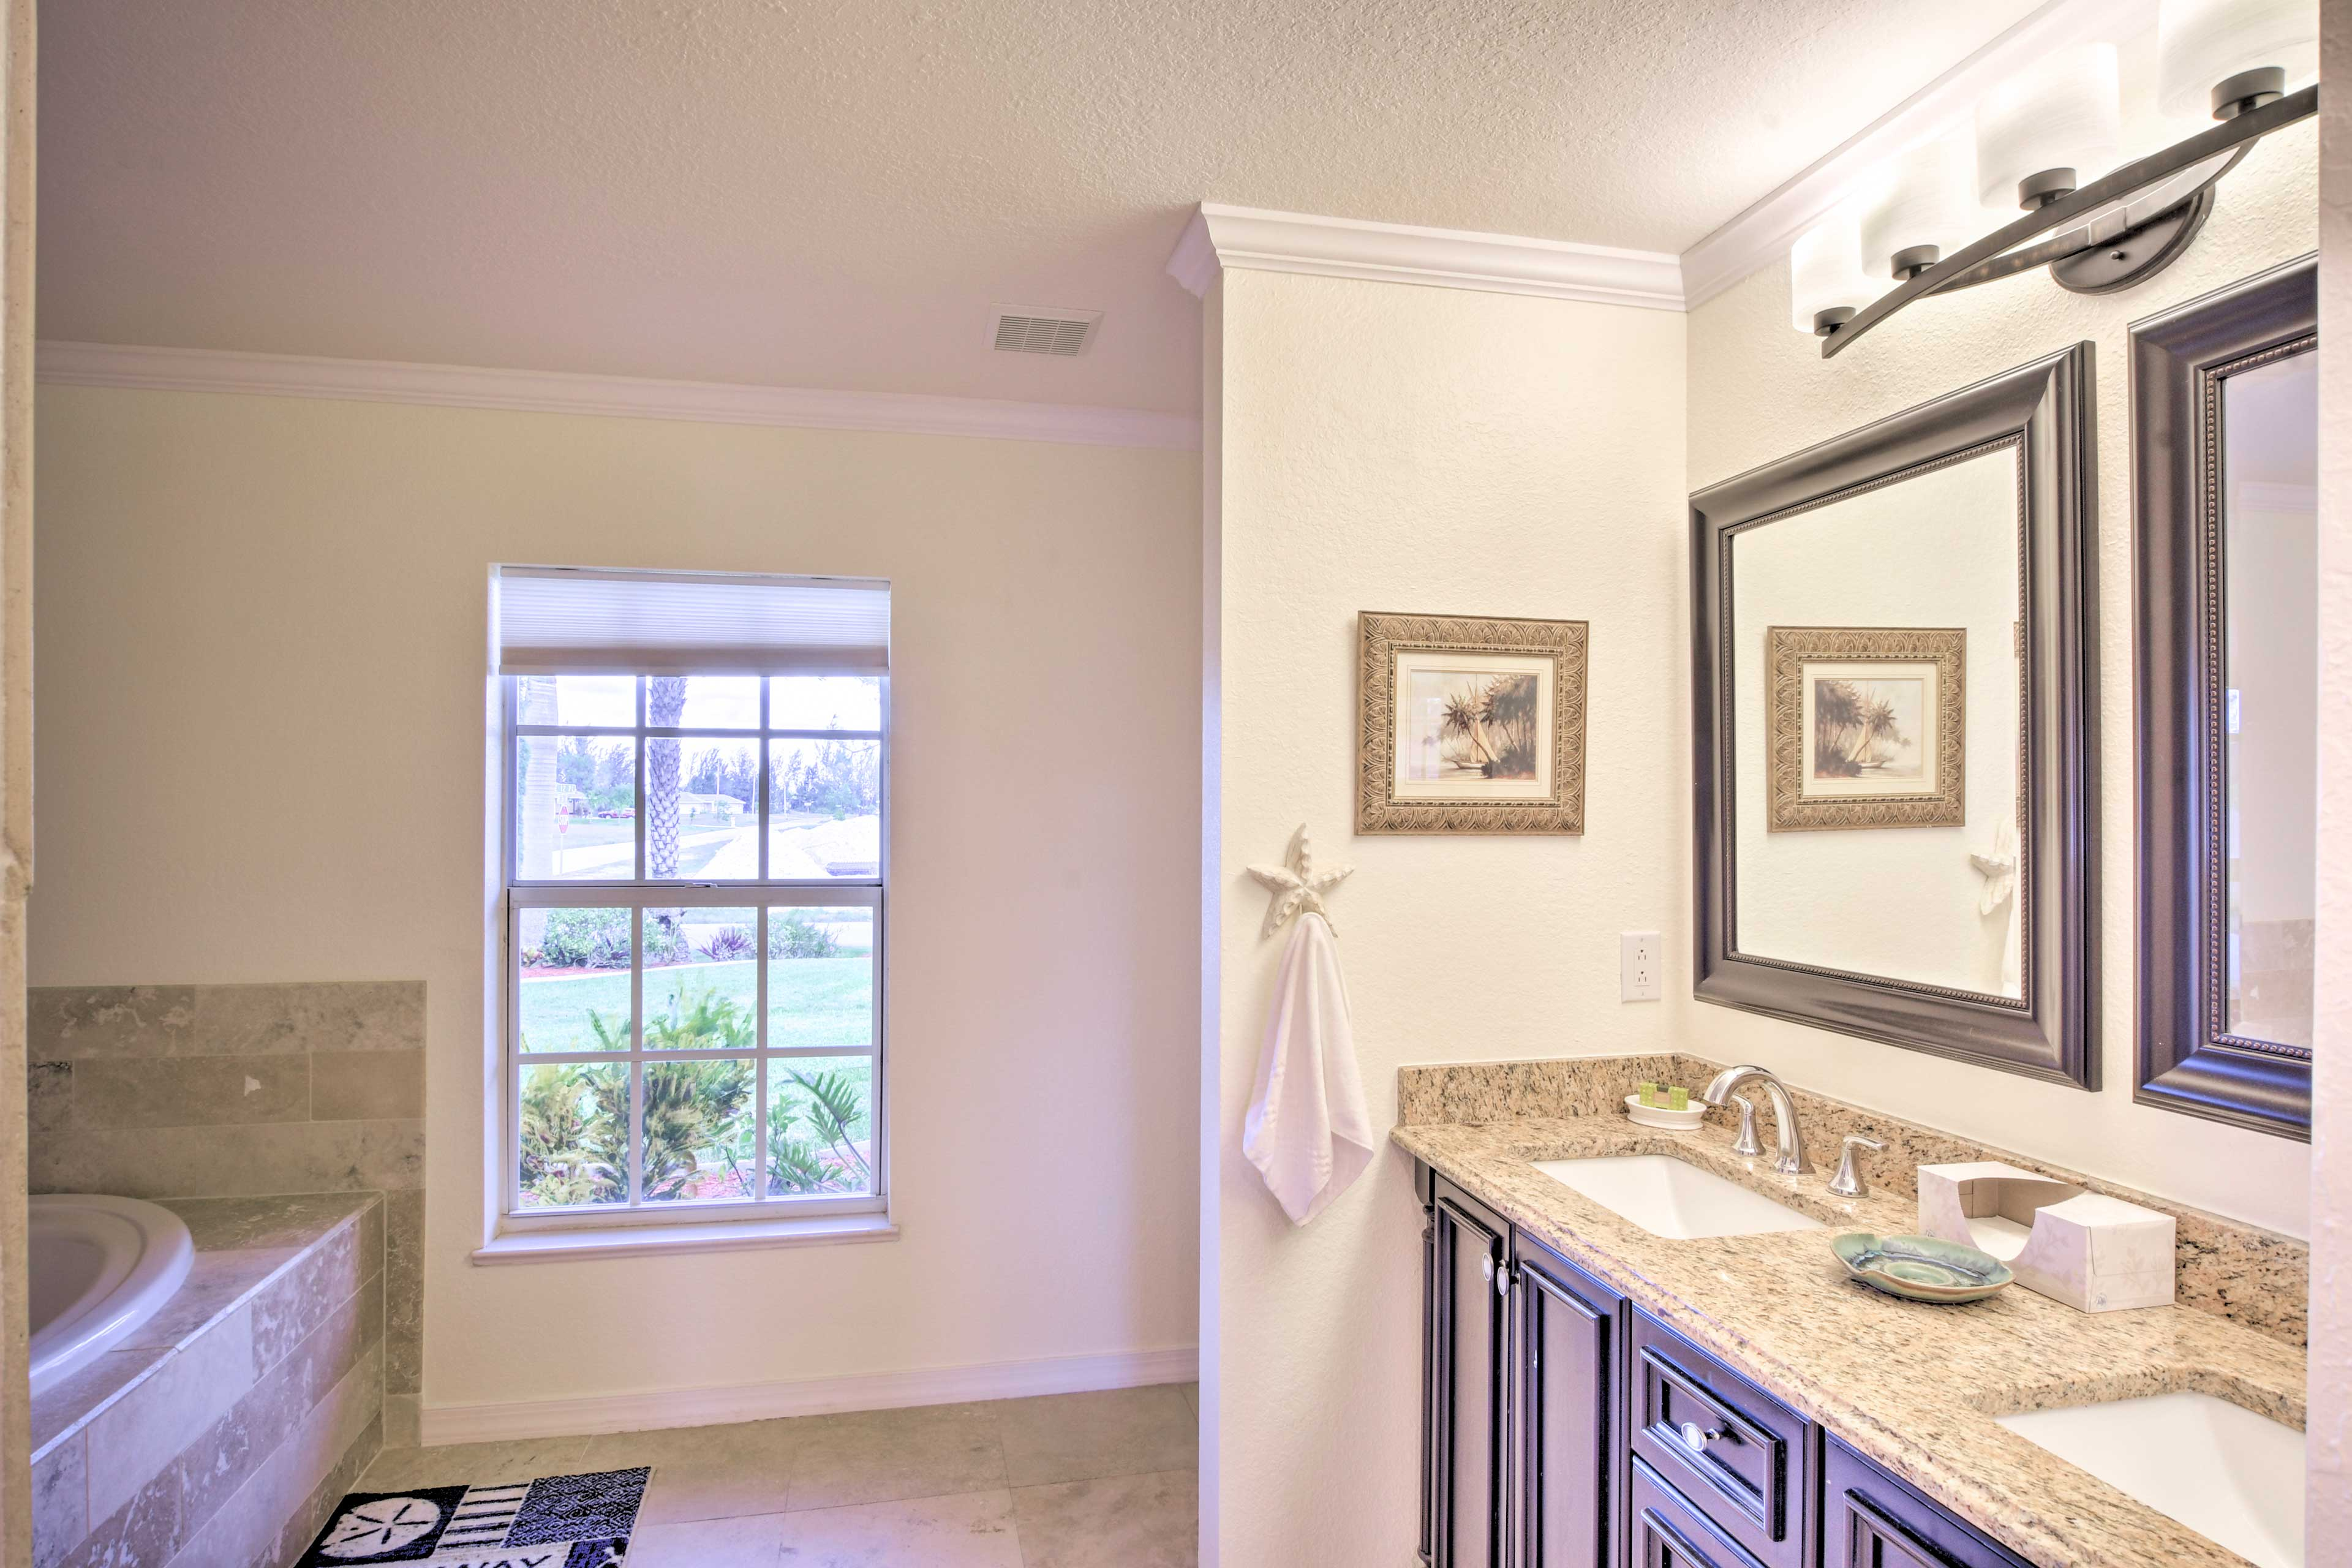 Jack-and-Jill sinks highlight this expansive bathroom.